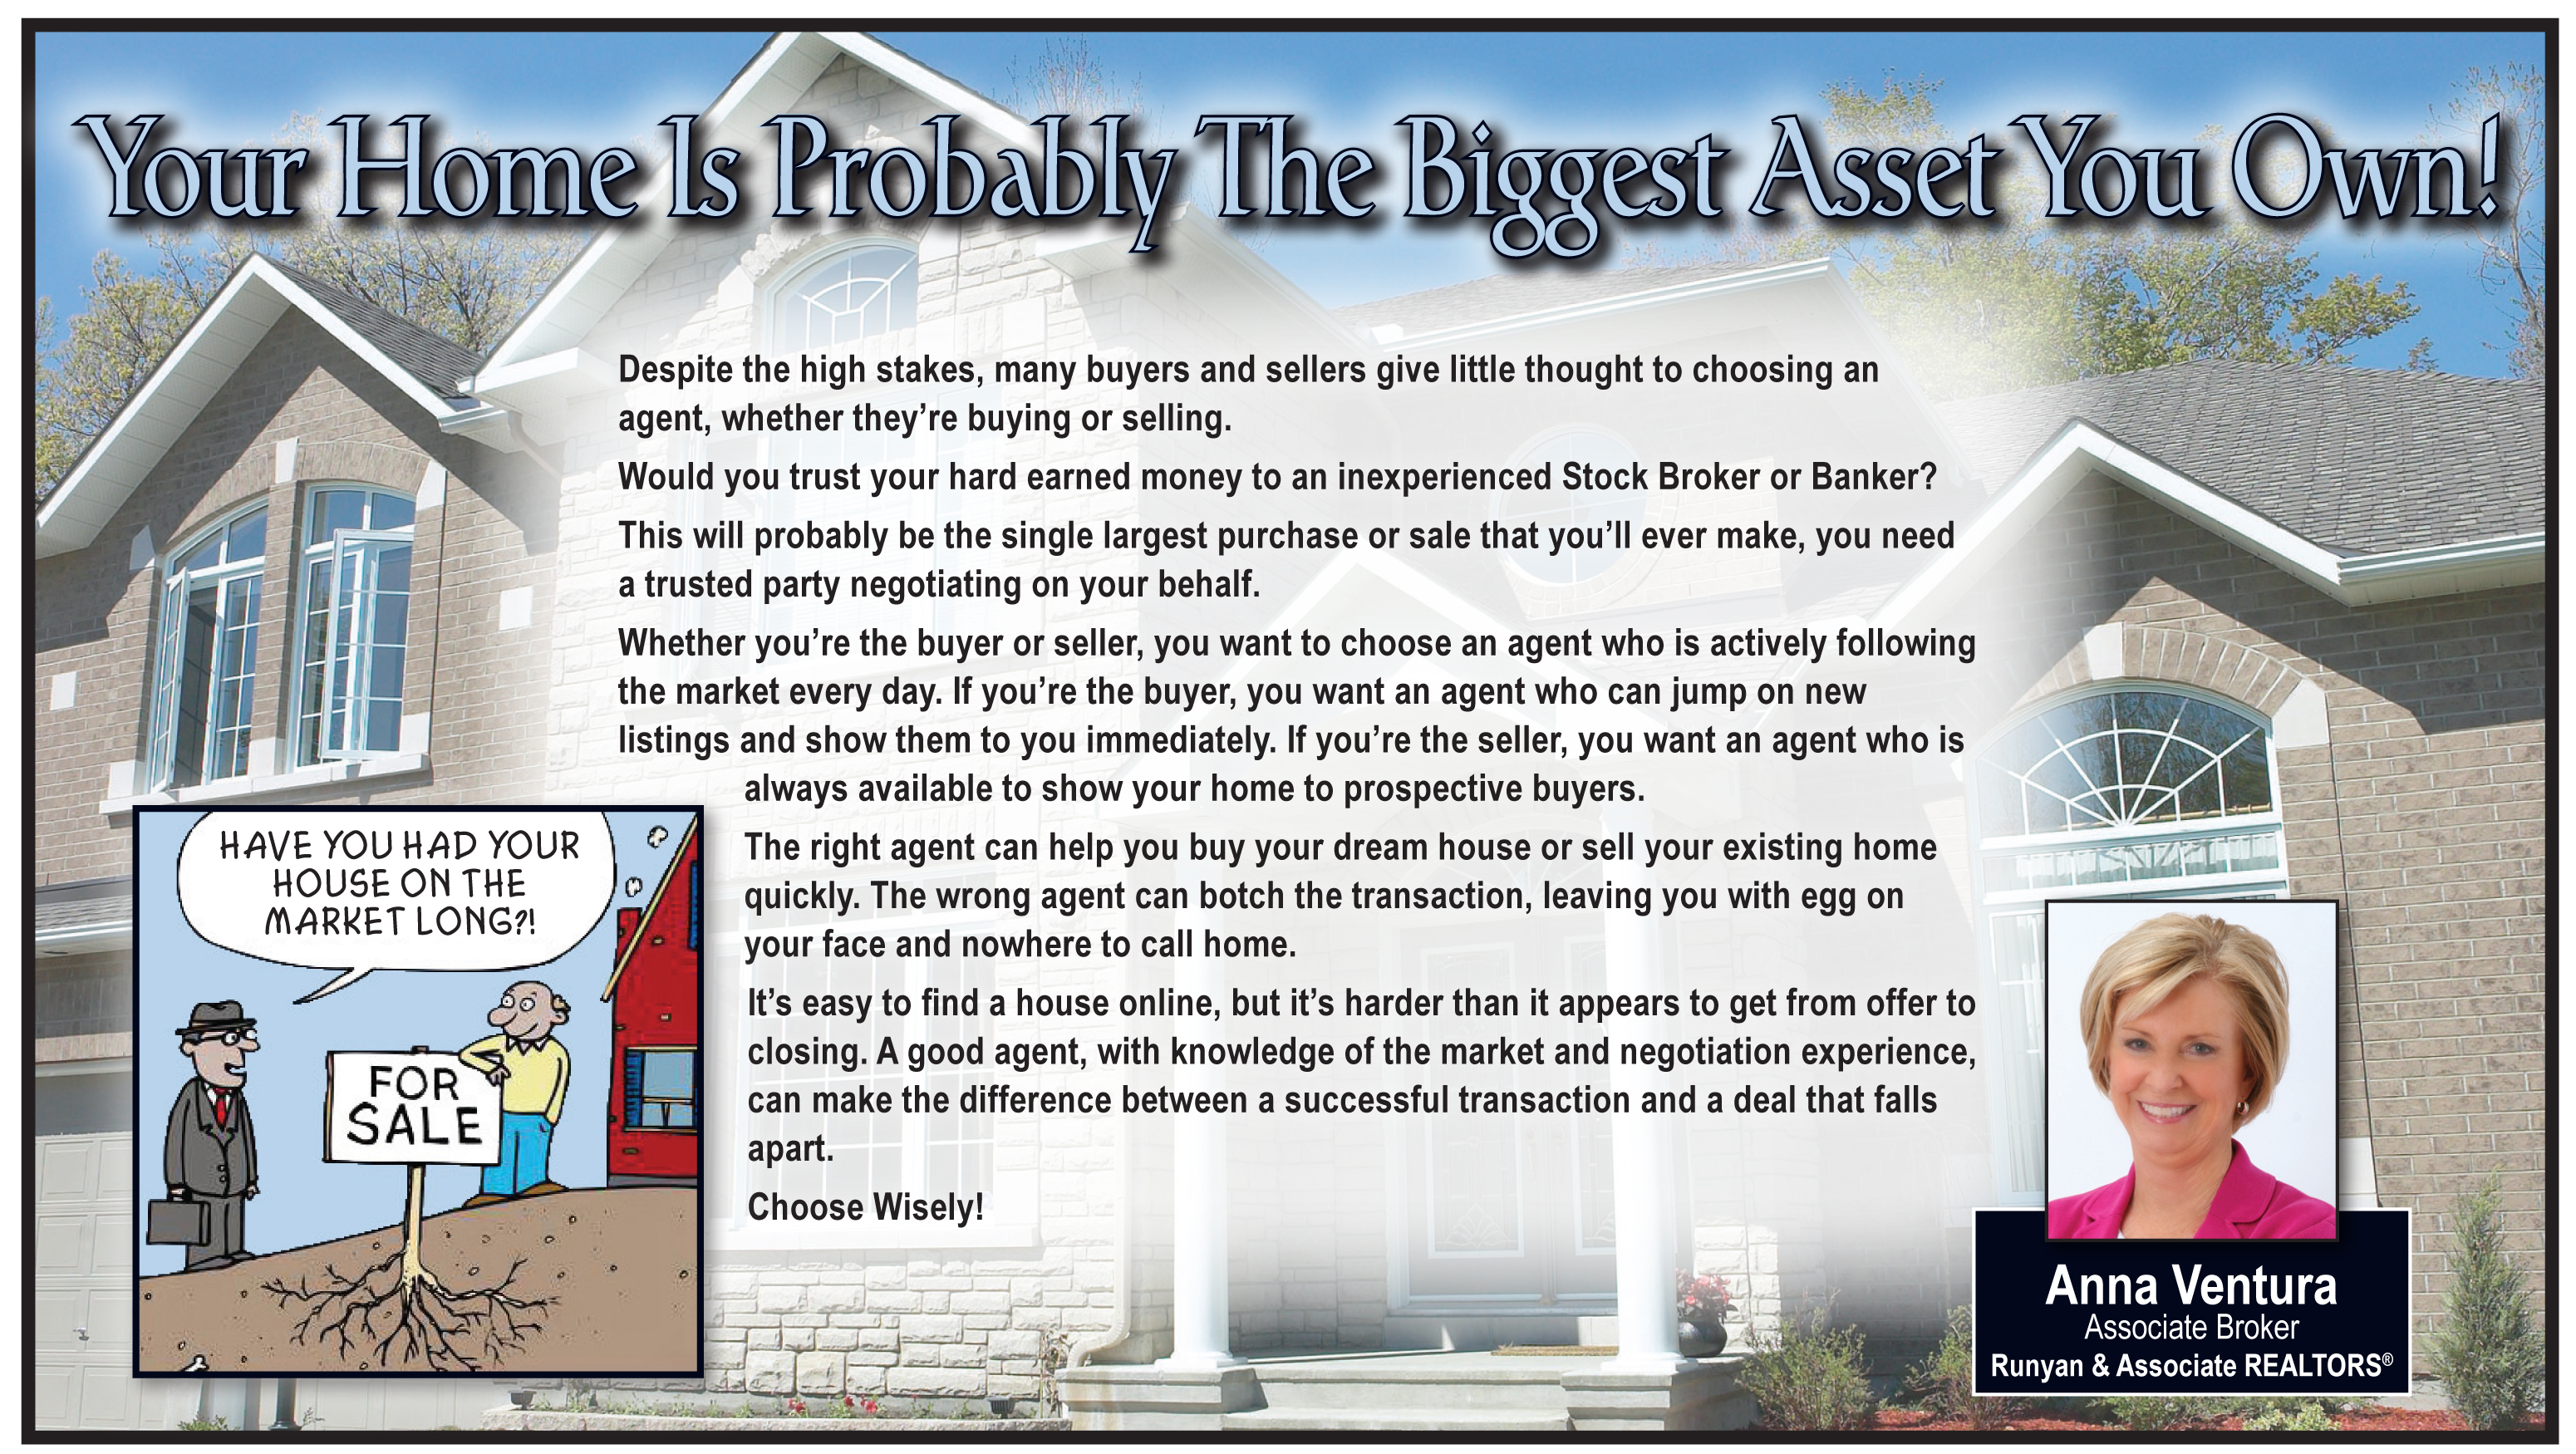 Your Largest Asset